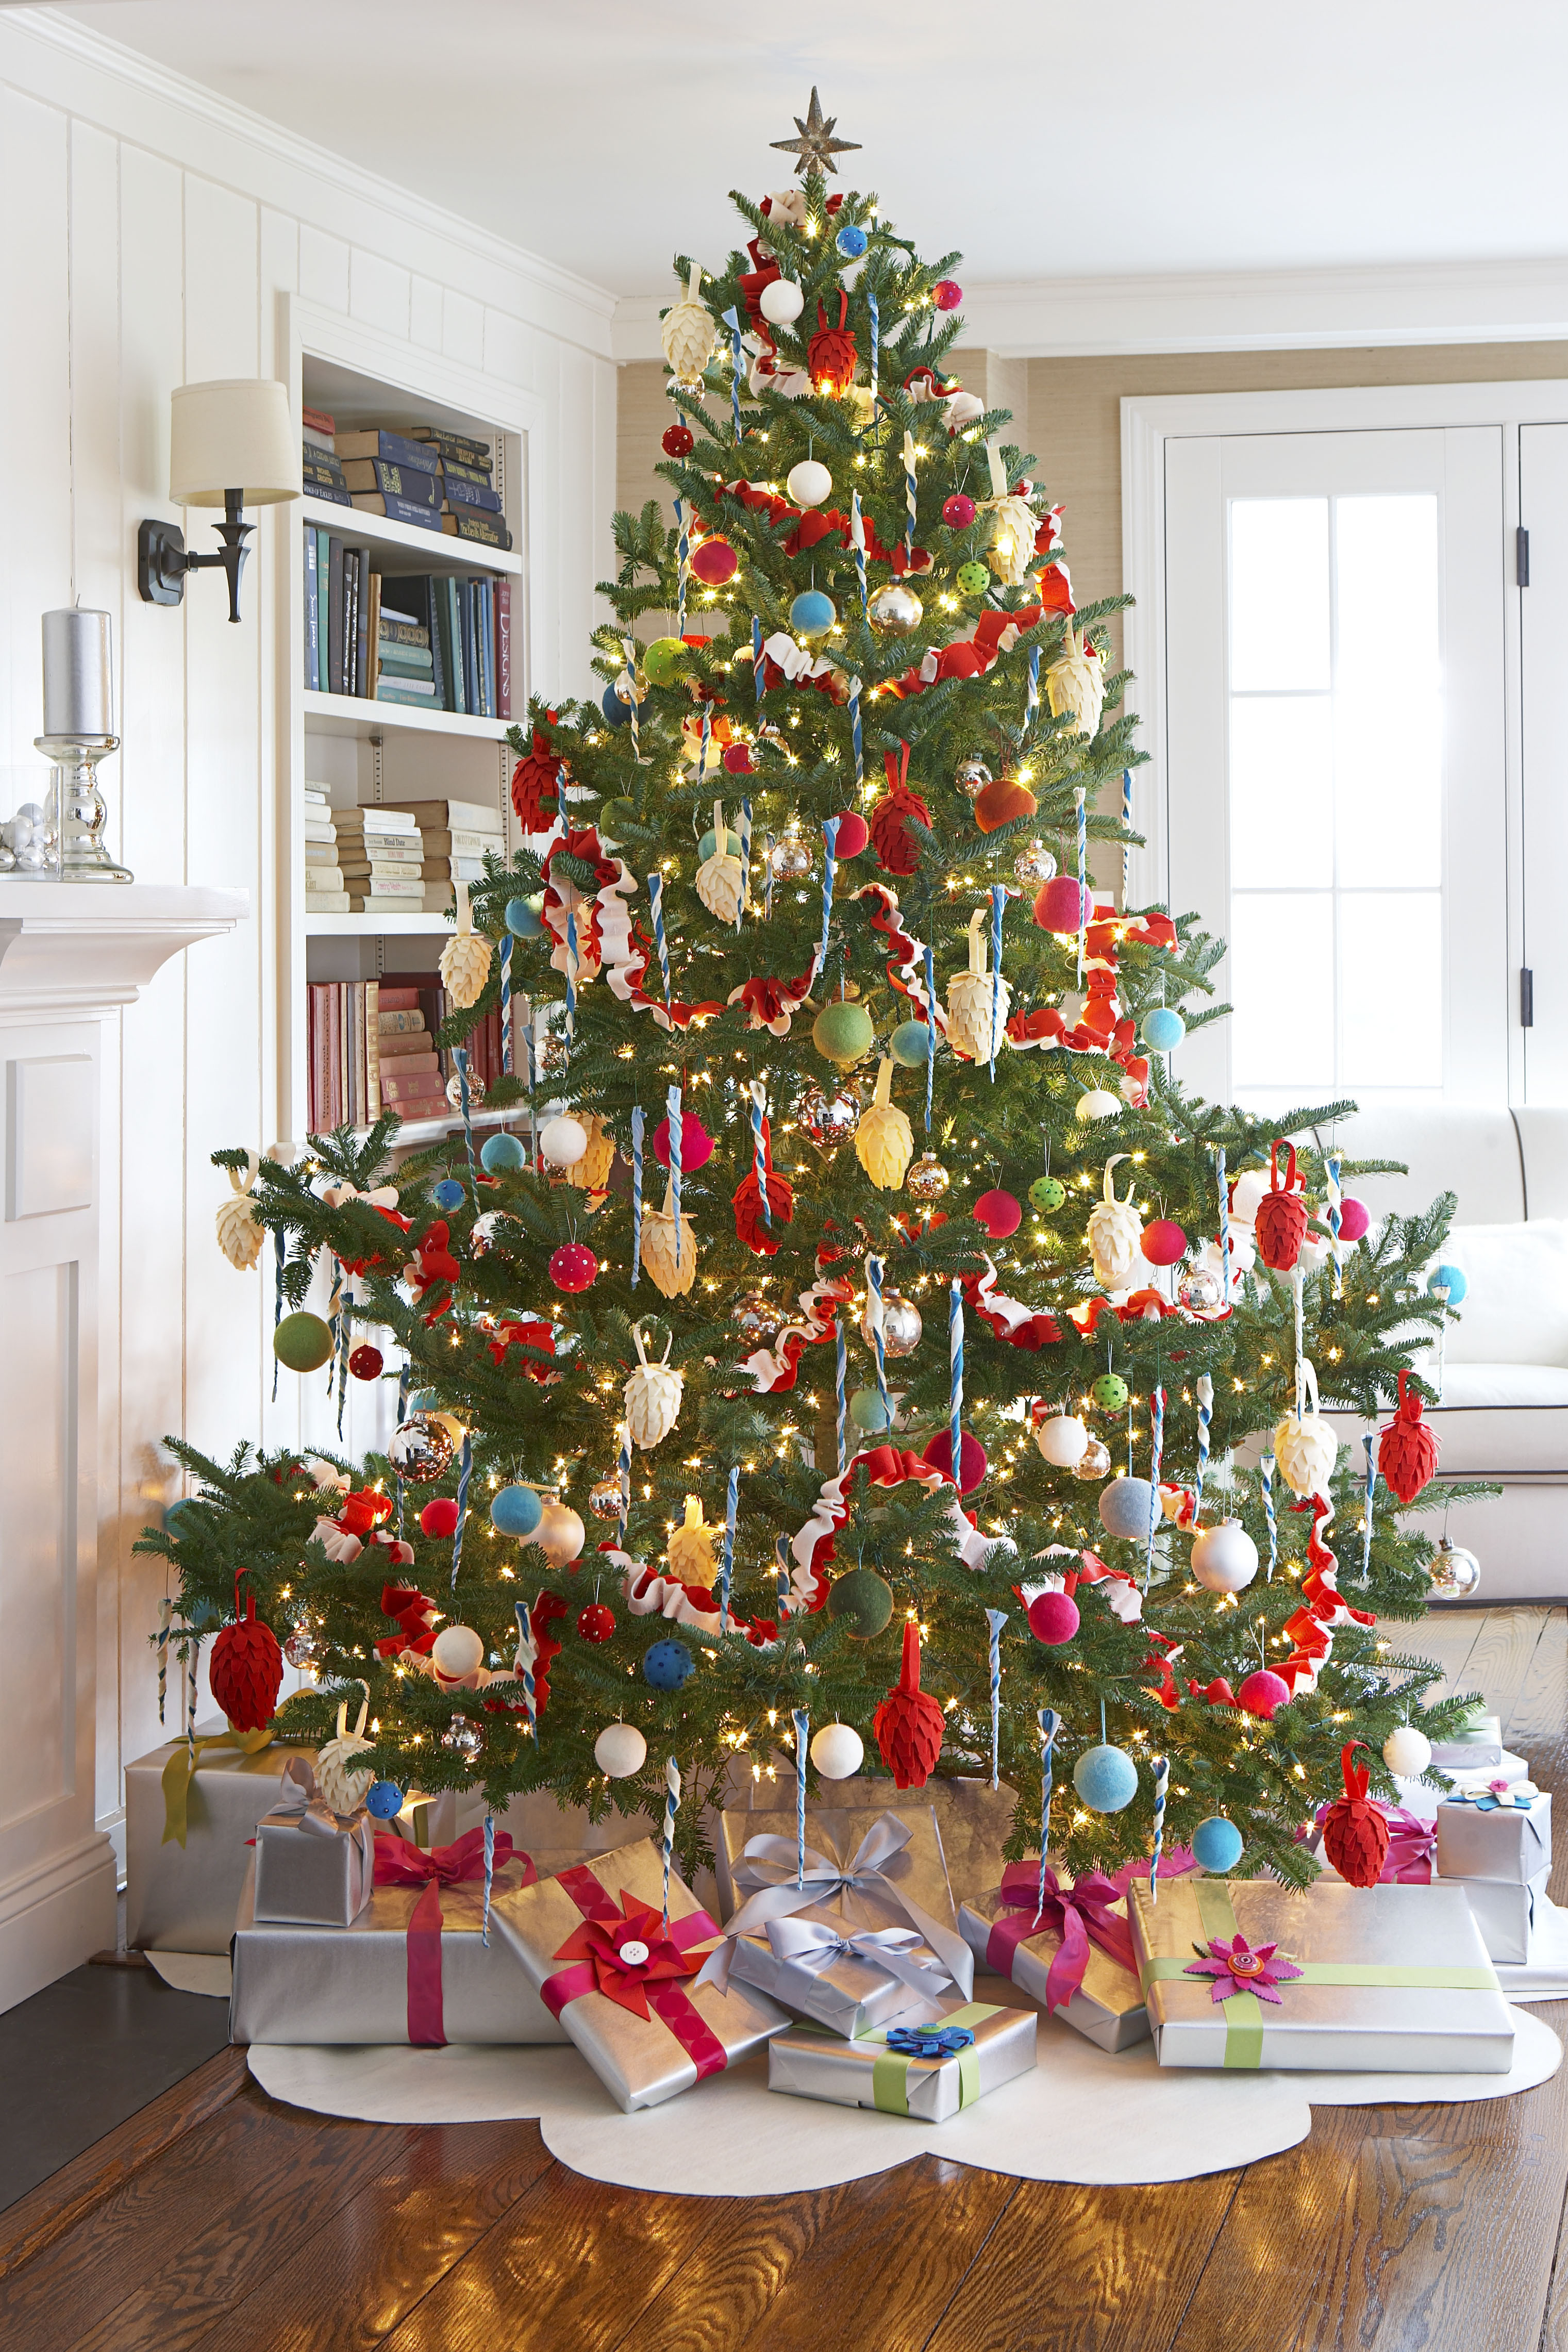 Lovely 70 Diy Christmas Decorations Easy Christmas Decorating Ideas Christmas Tree and Decorations Of Delightful 50 Pictures Christmas Tree and Decorations